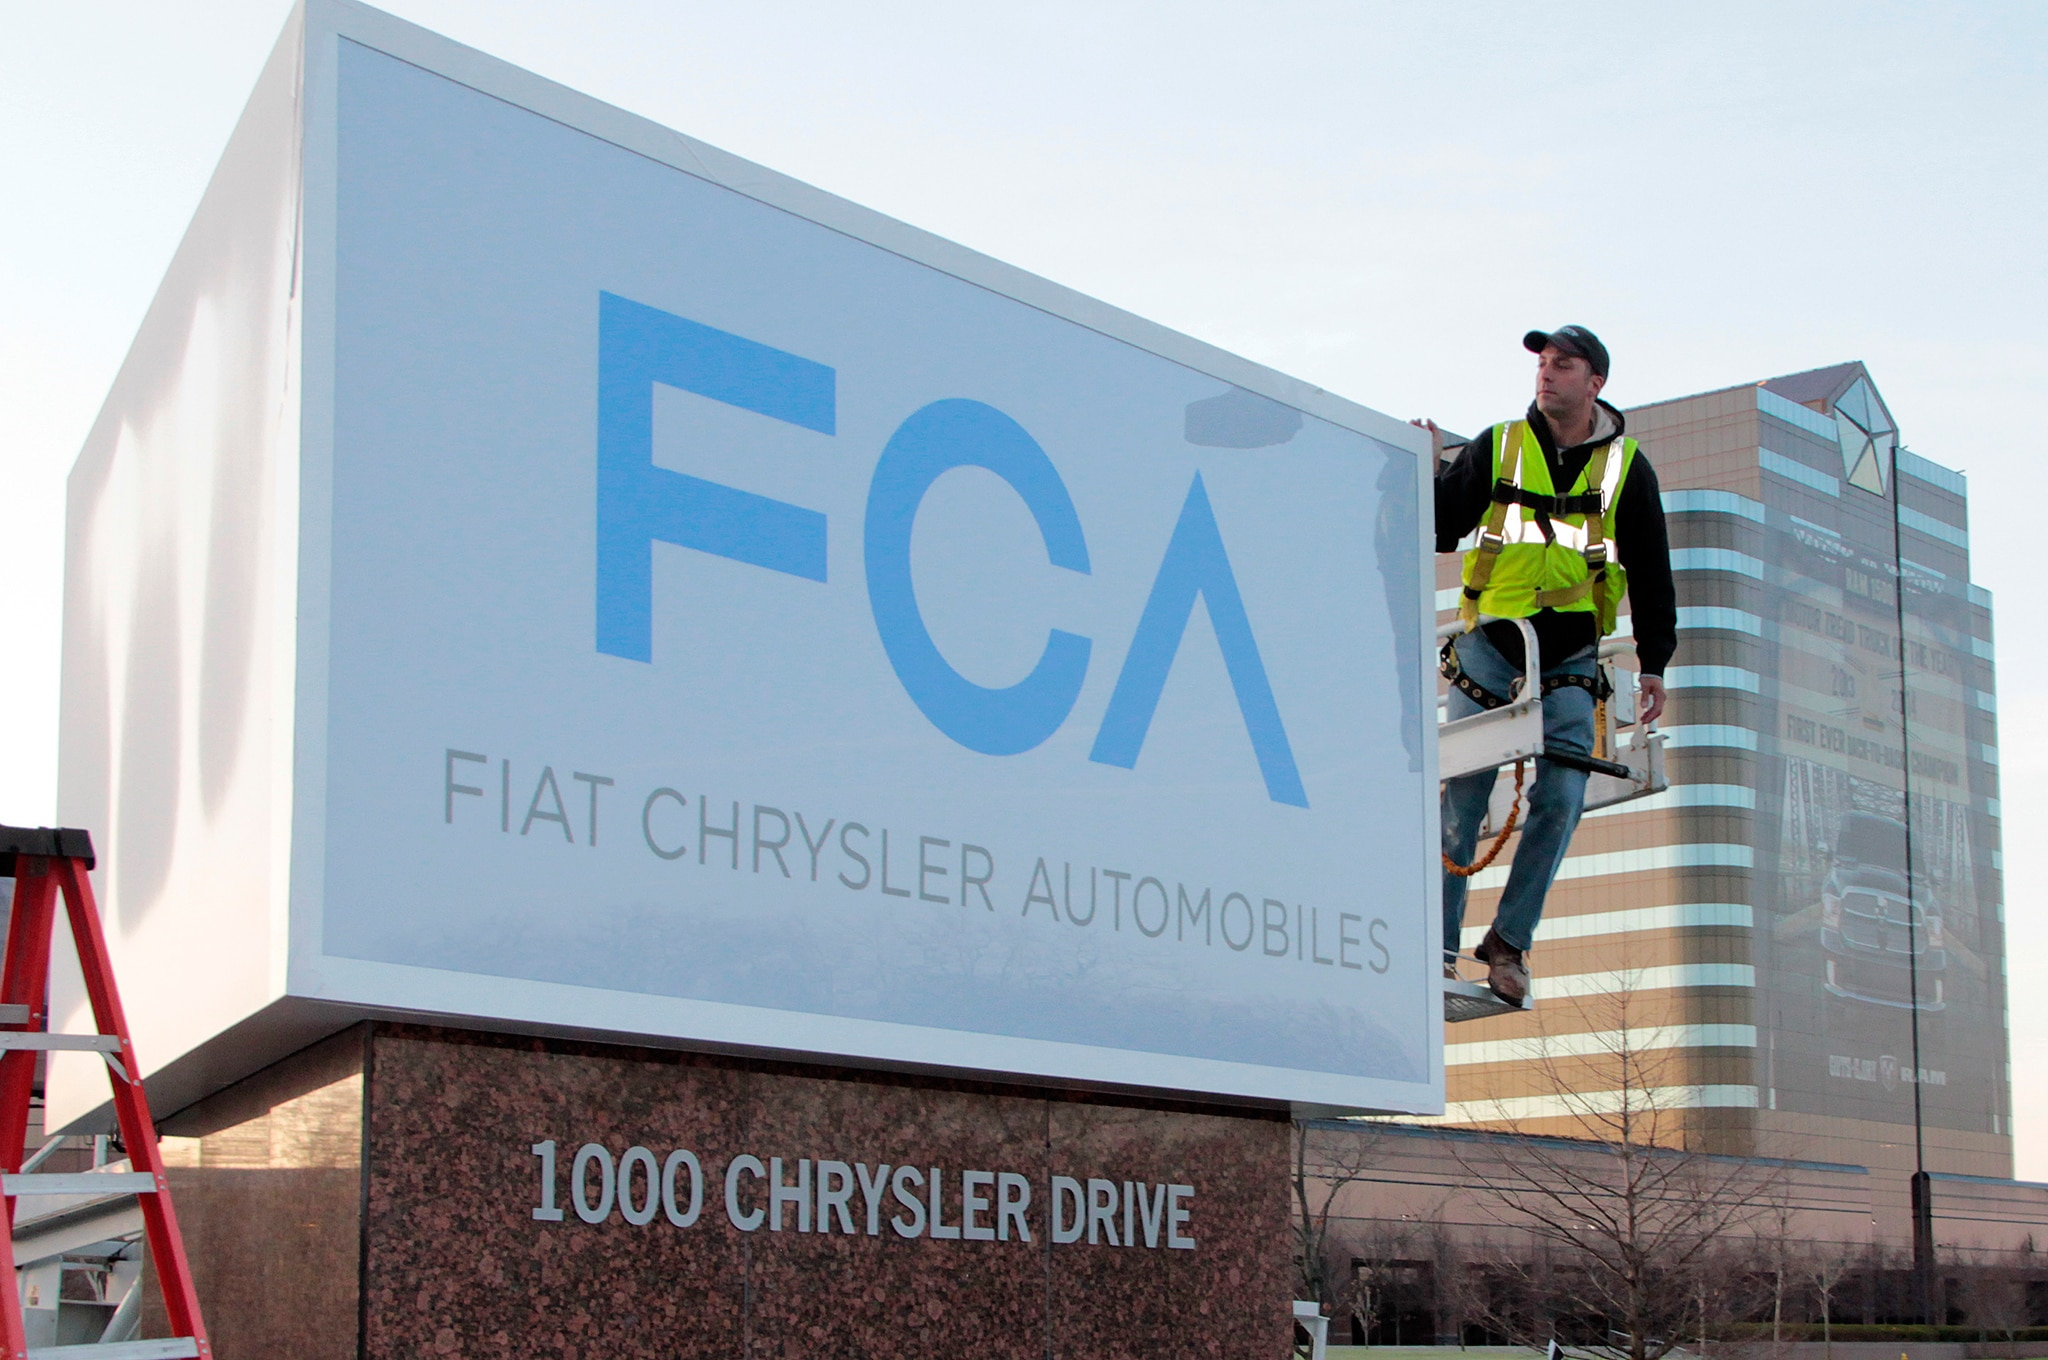 http://st.automobilemag.com/uploads/sites/11/2014/05/fiat-chrysler-automobiles-new-sign-construction-41.jpg